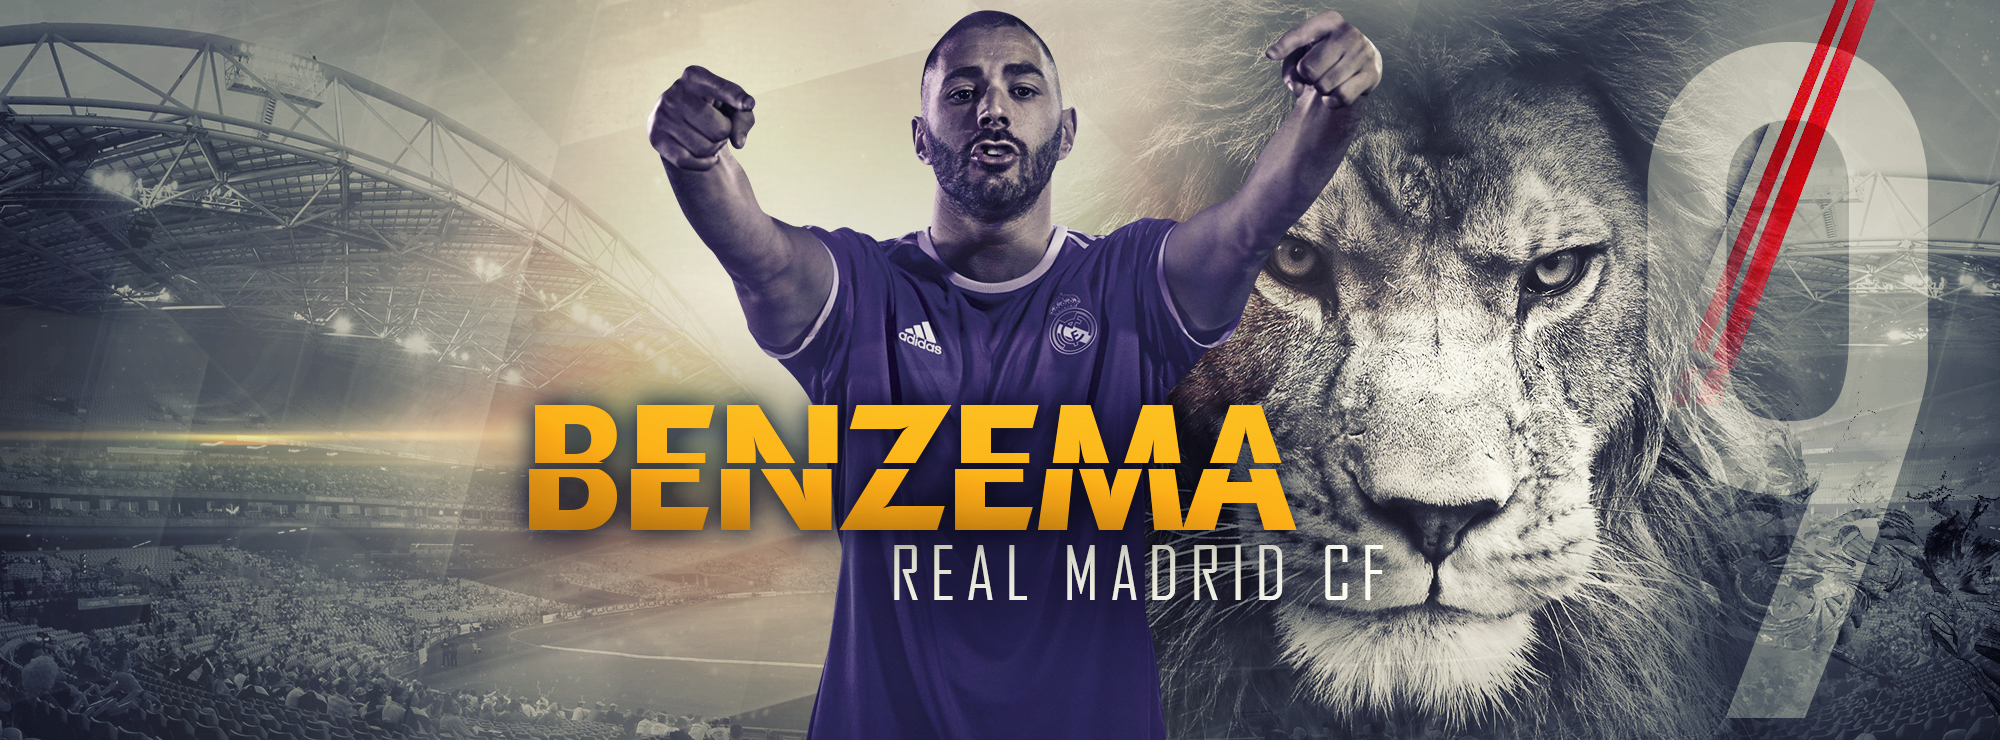 Karim Benzema   Real Madrid by Kerimov23 2000x740